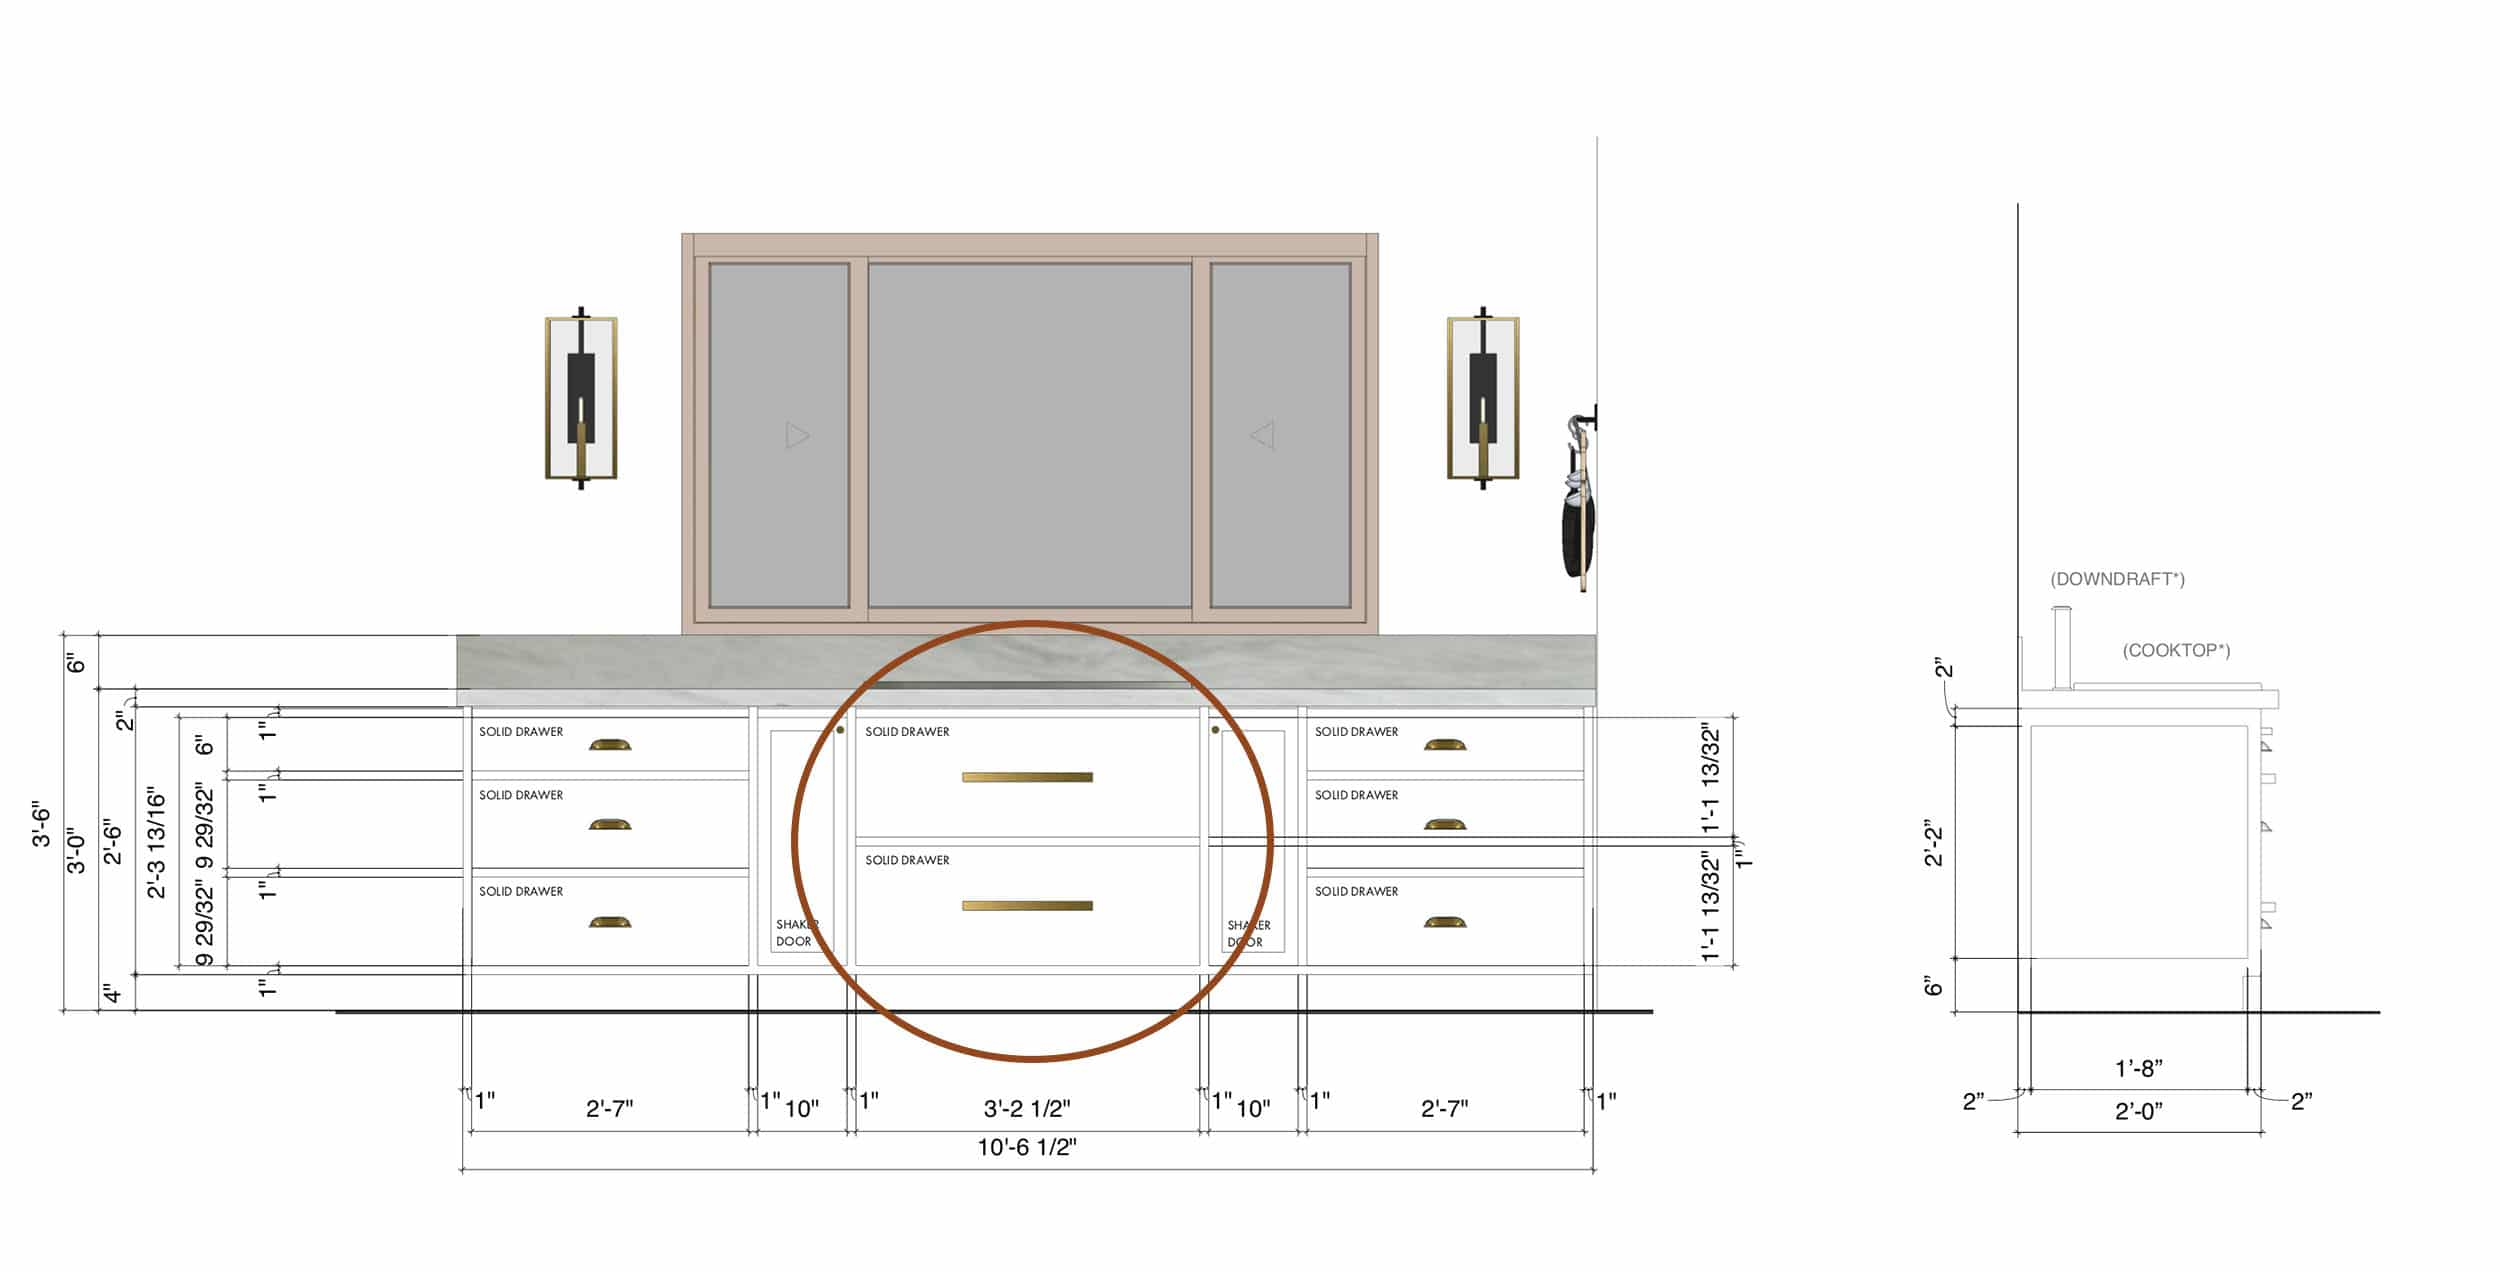 Ehd For Blog 5 Things We Didn't Know Kitchen Downdraft Drawers 1